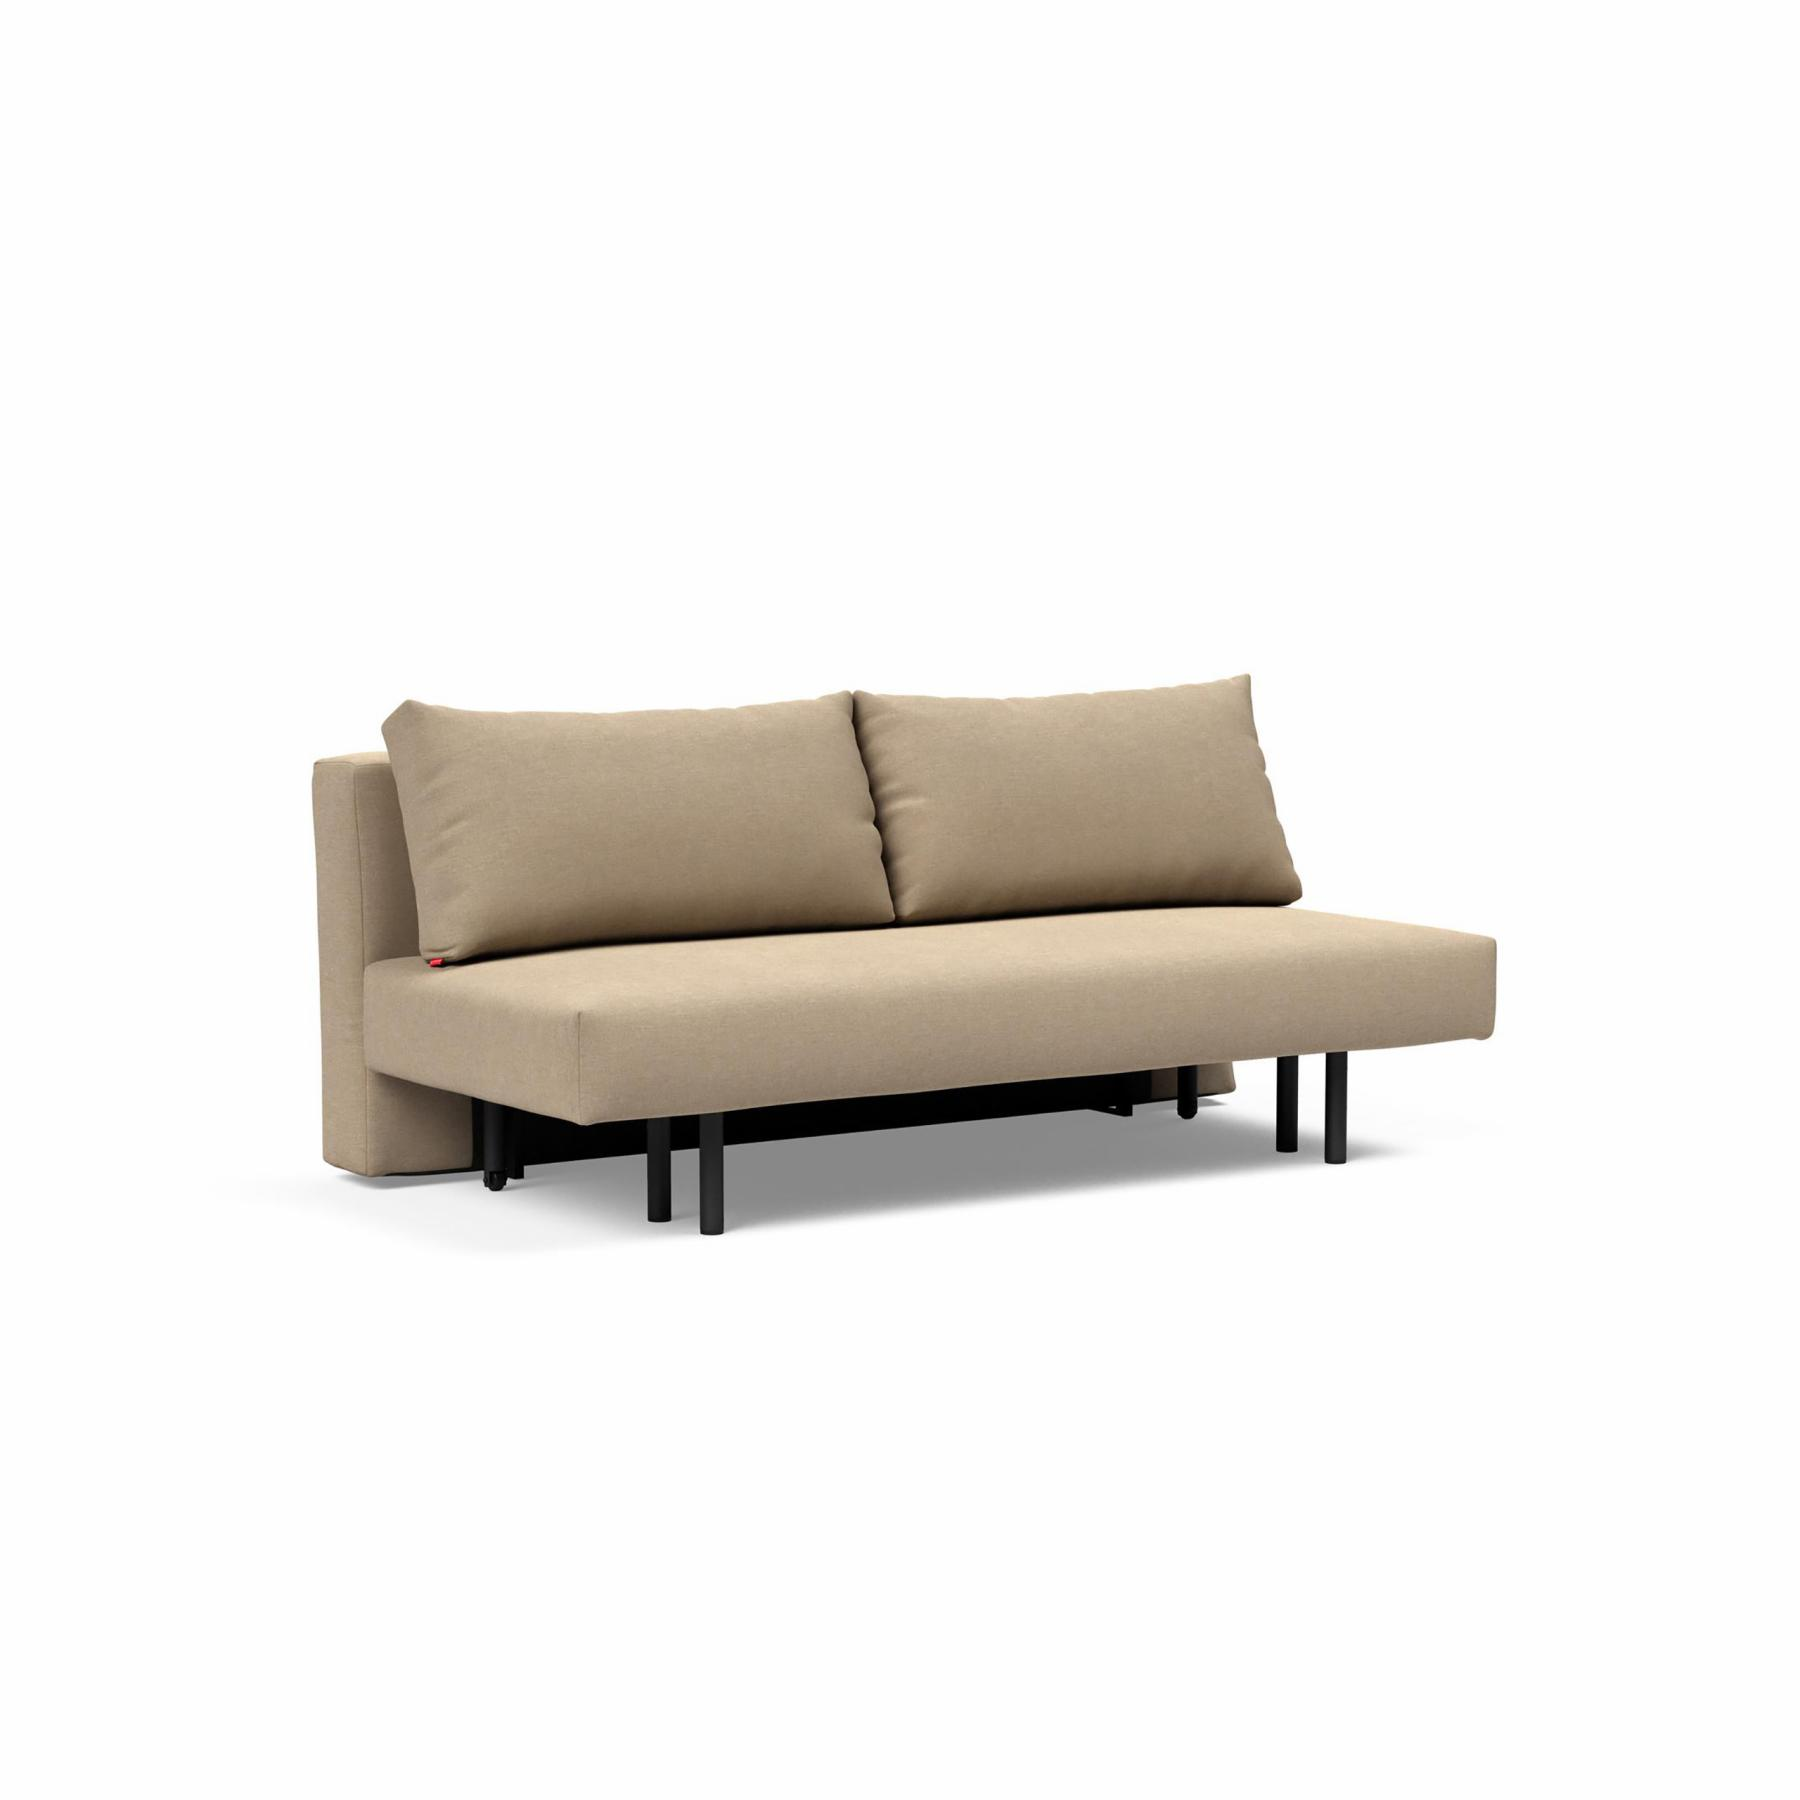 Achillas Sofa Bed With Multiple Choices, How To Fix A Sleeper Sofa